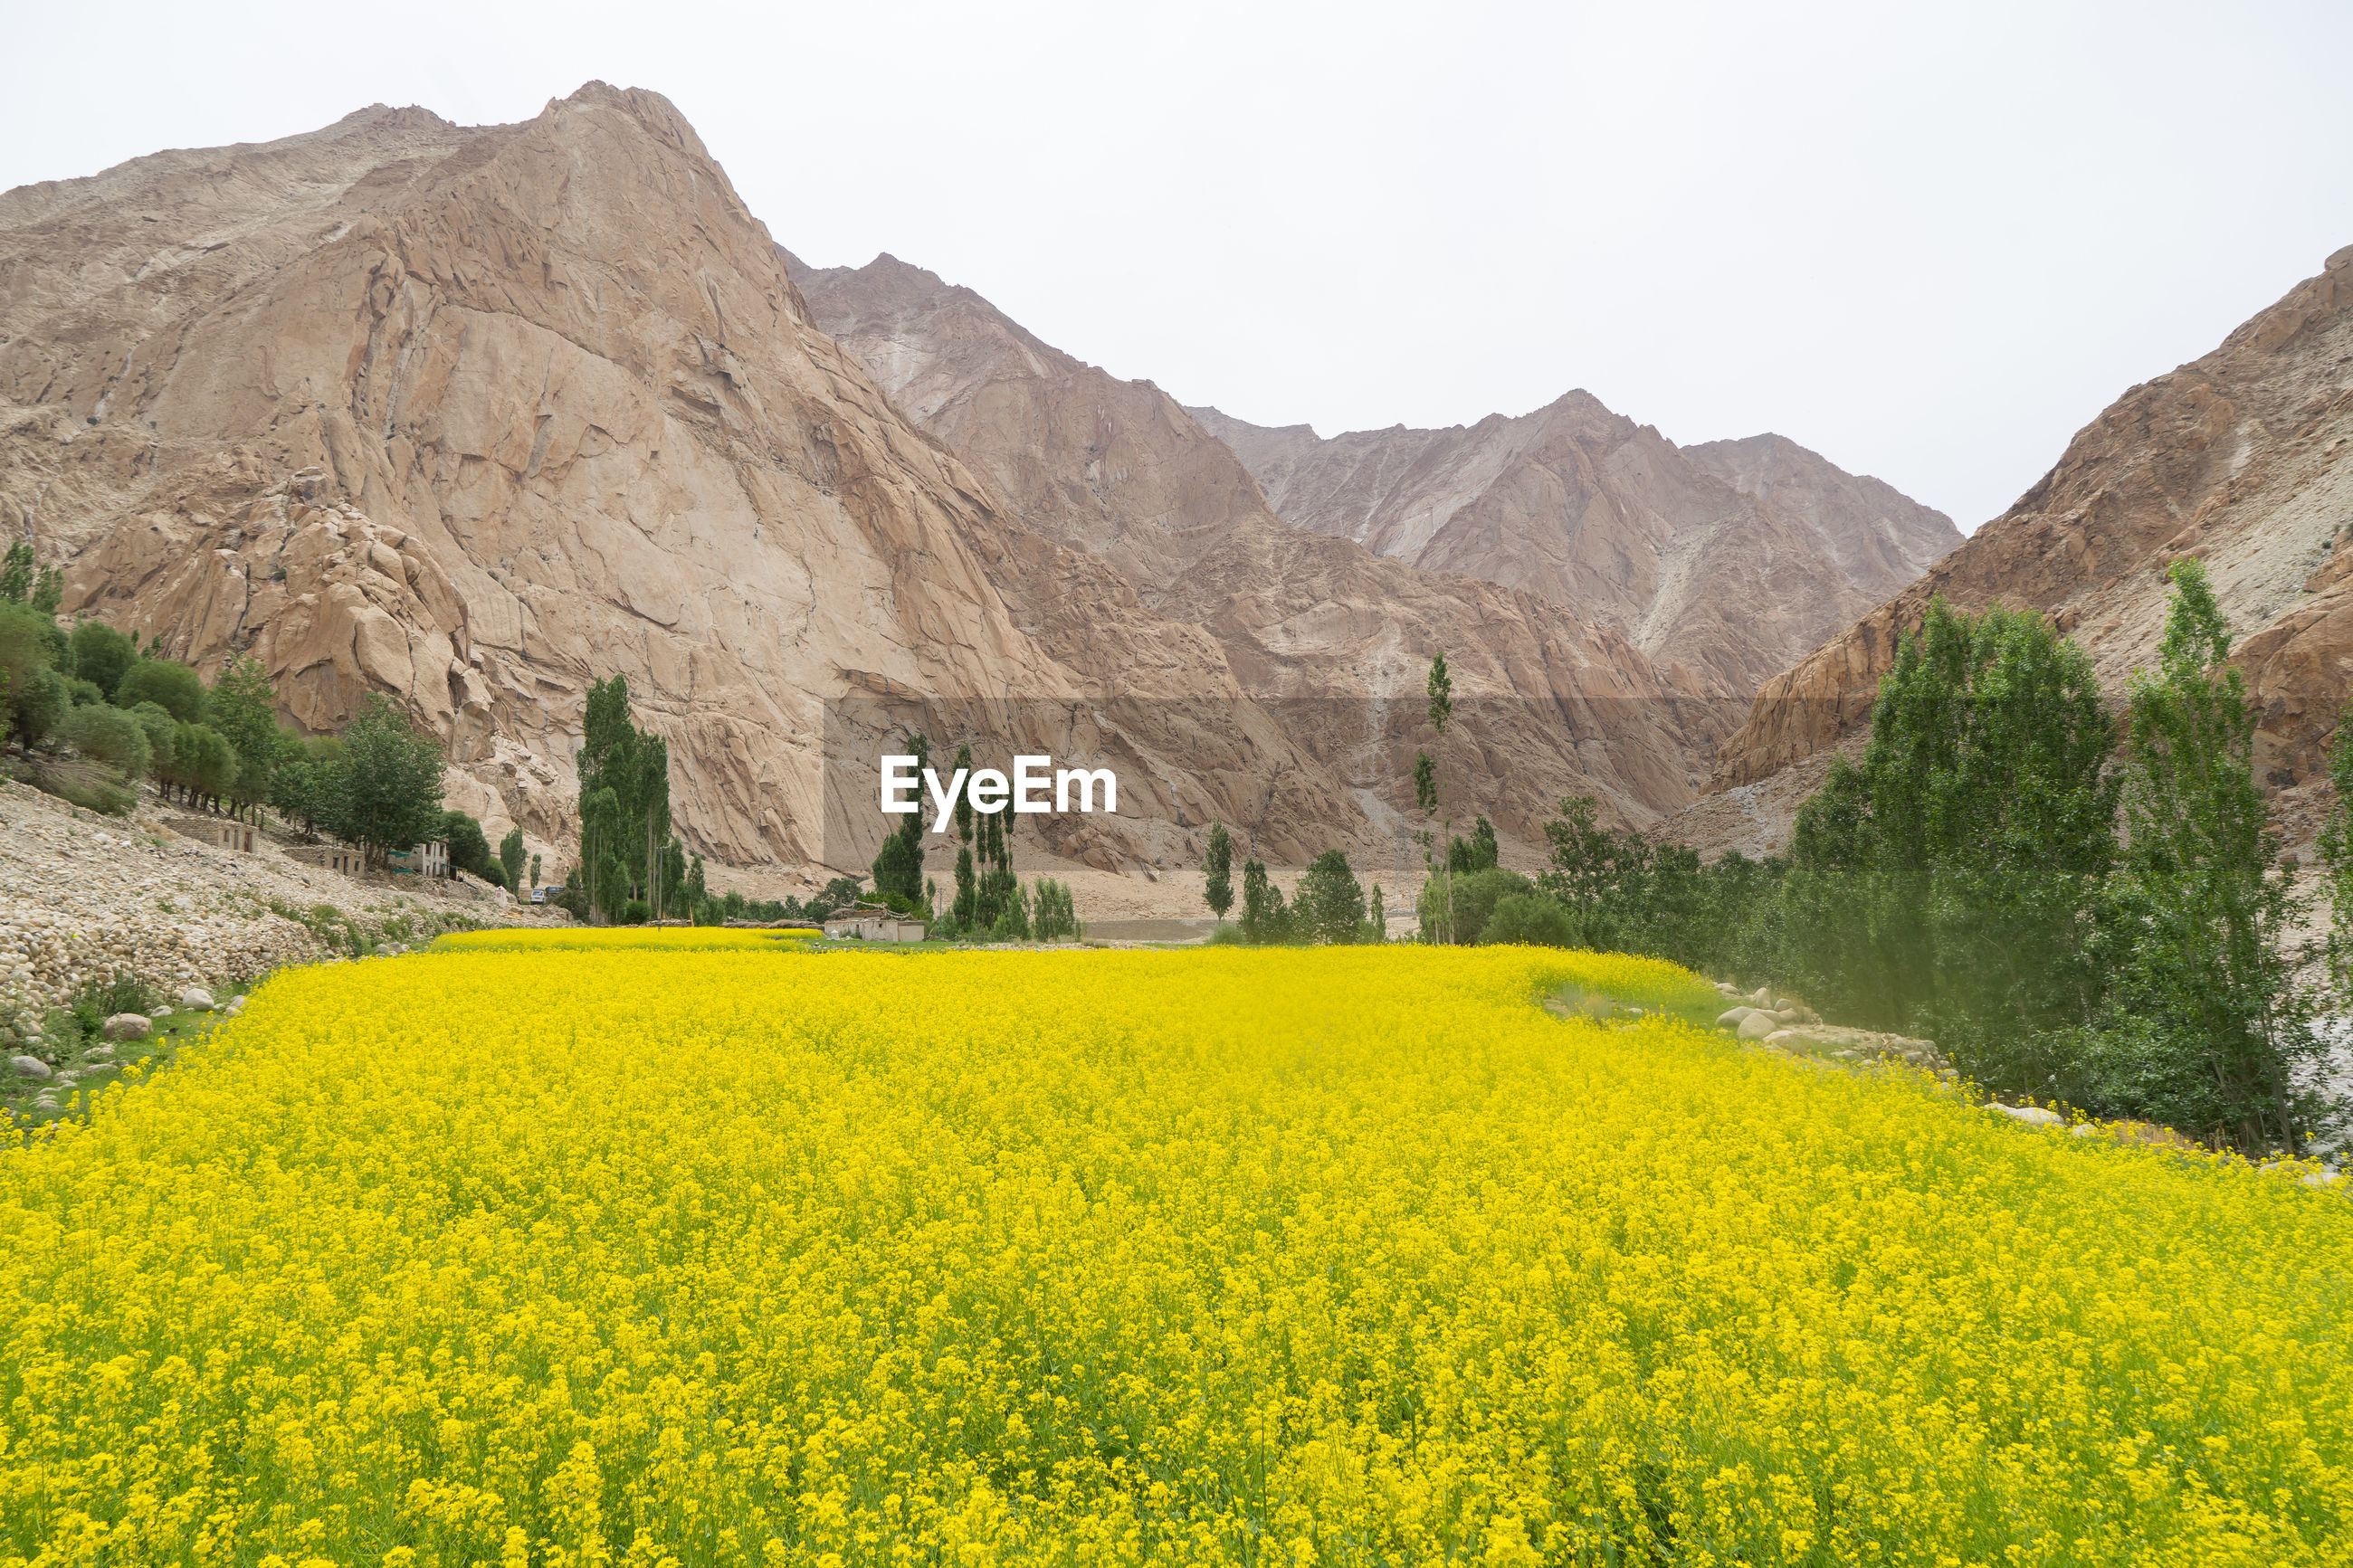 SCENIC VIEW OF YELLOW FLOWERING PLANTS AND MOUNTAINS